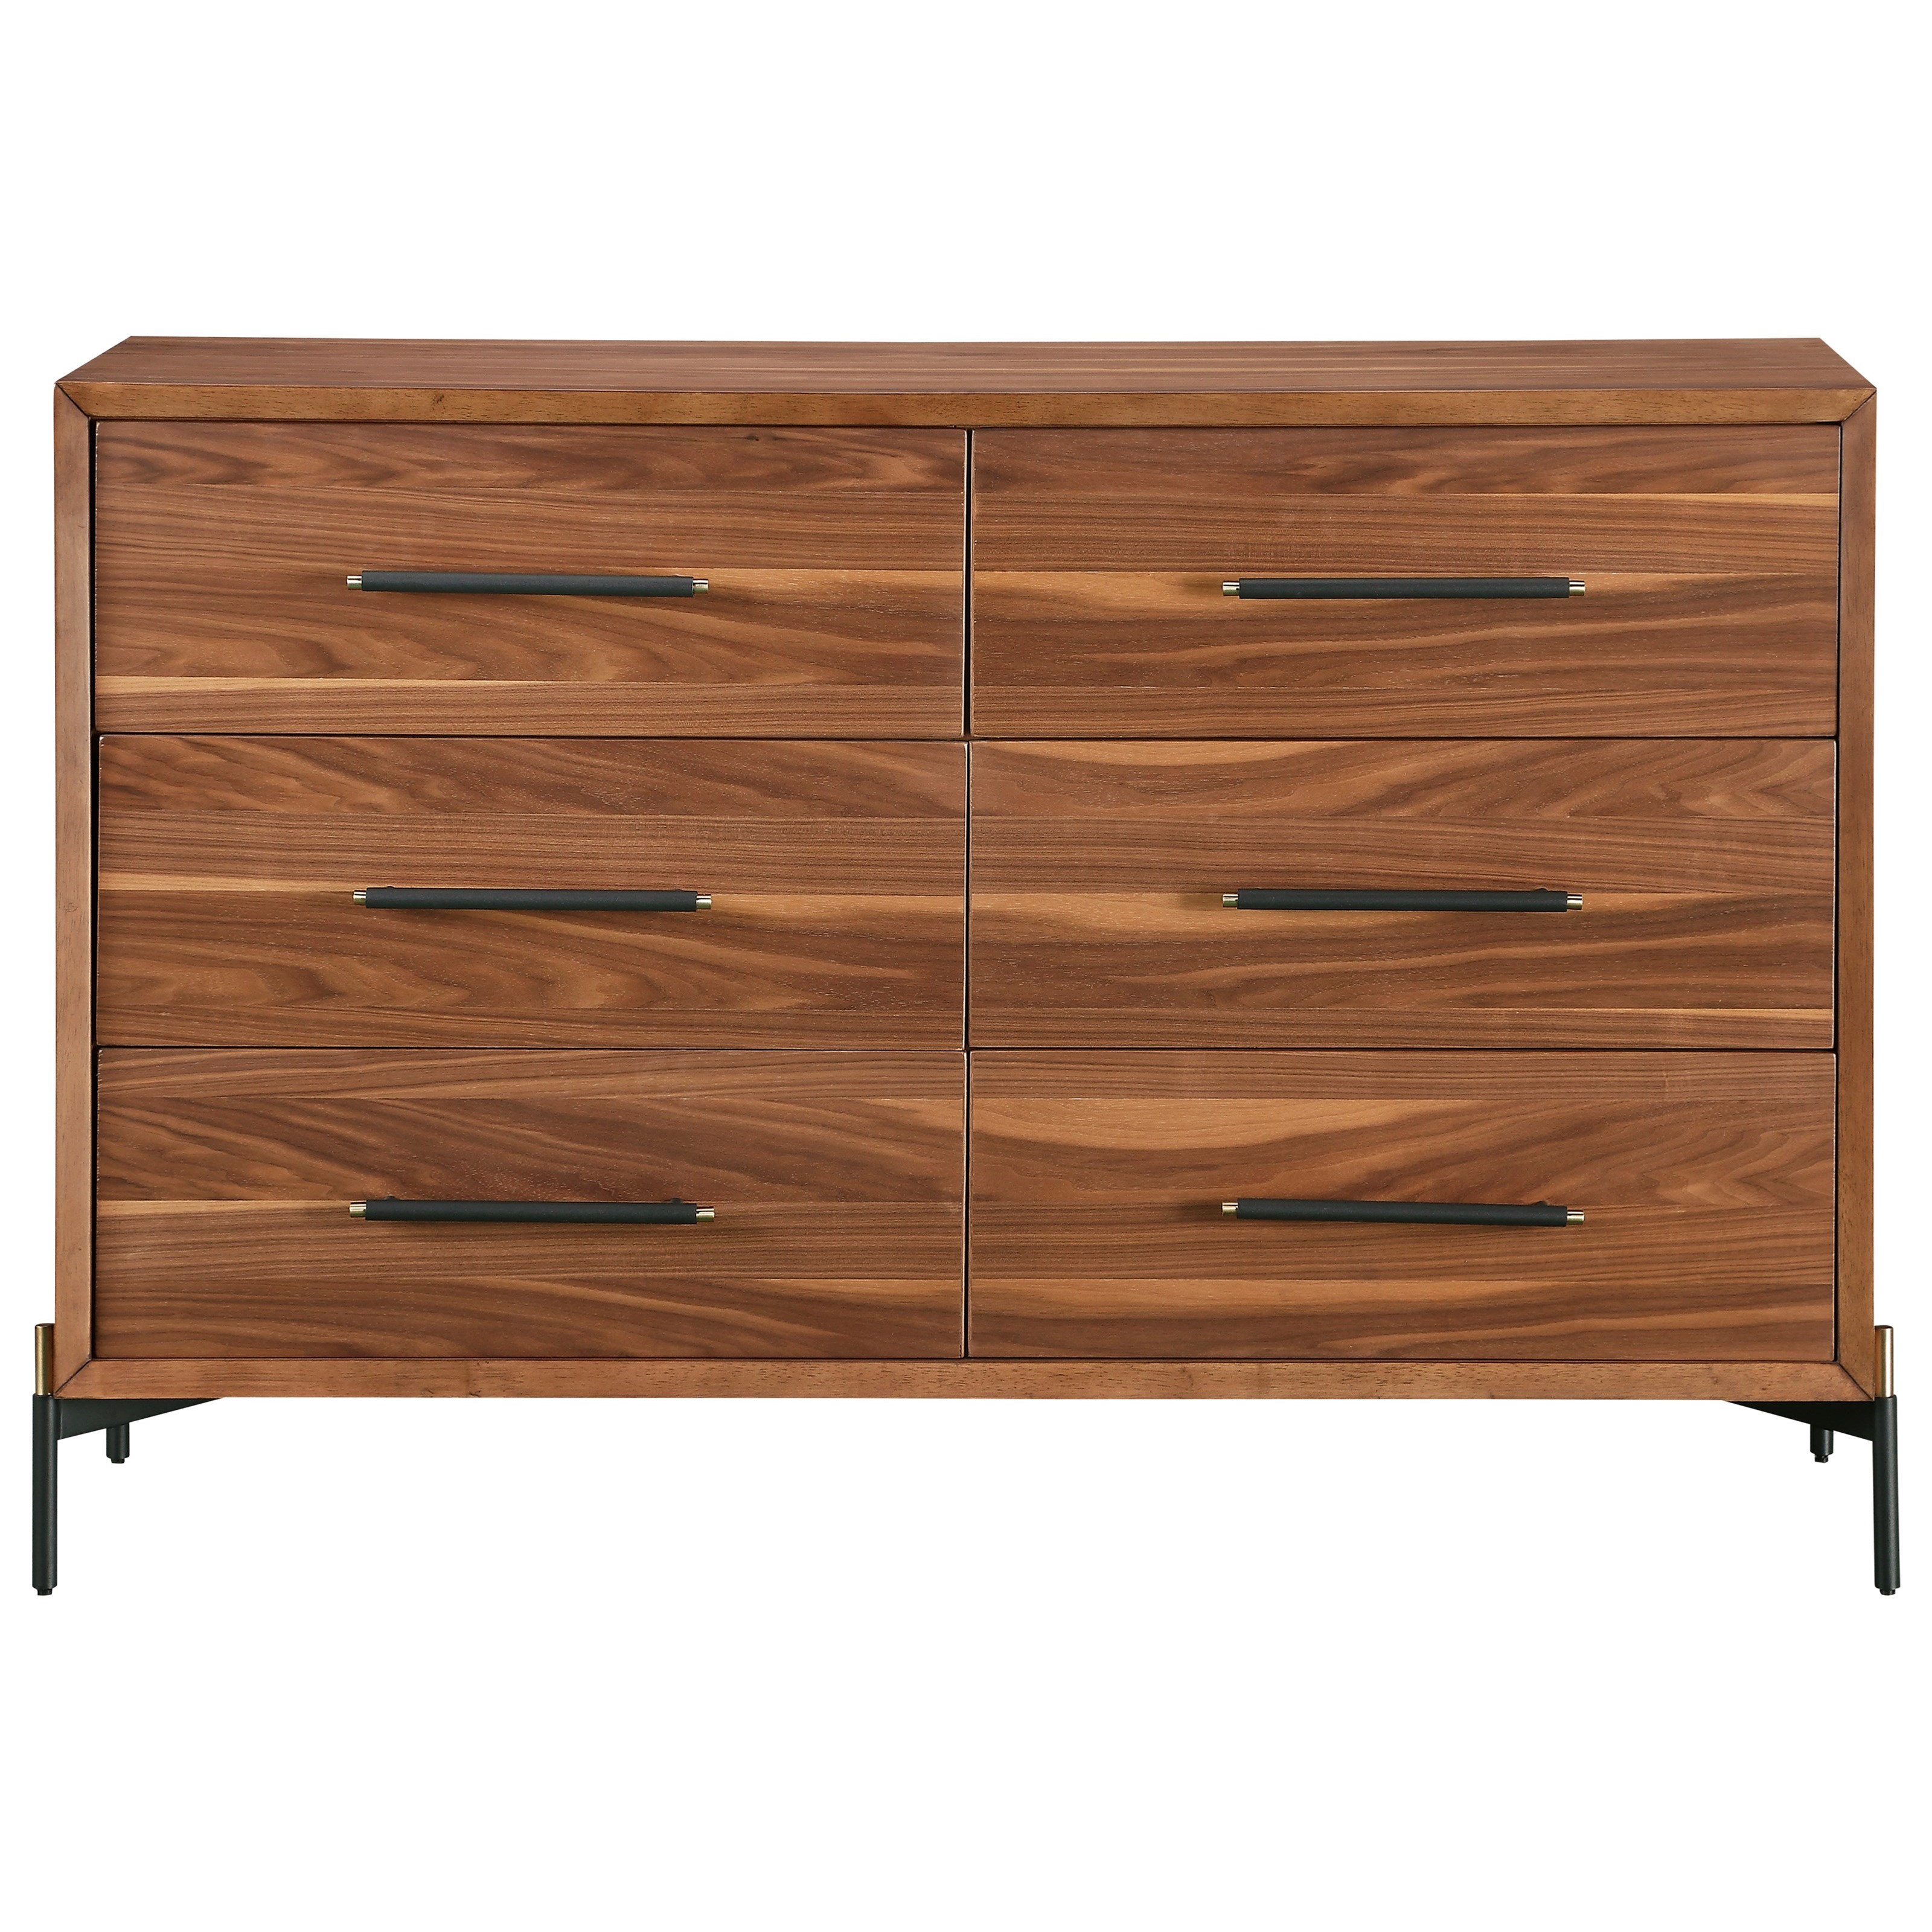 Bobby Berk Gehl 6 Drawer Dresser by A.R.T. Furniture Inc at C. S. Wo & Sons Hawaii